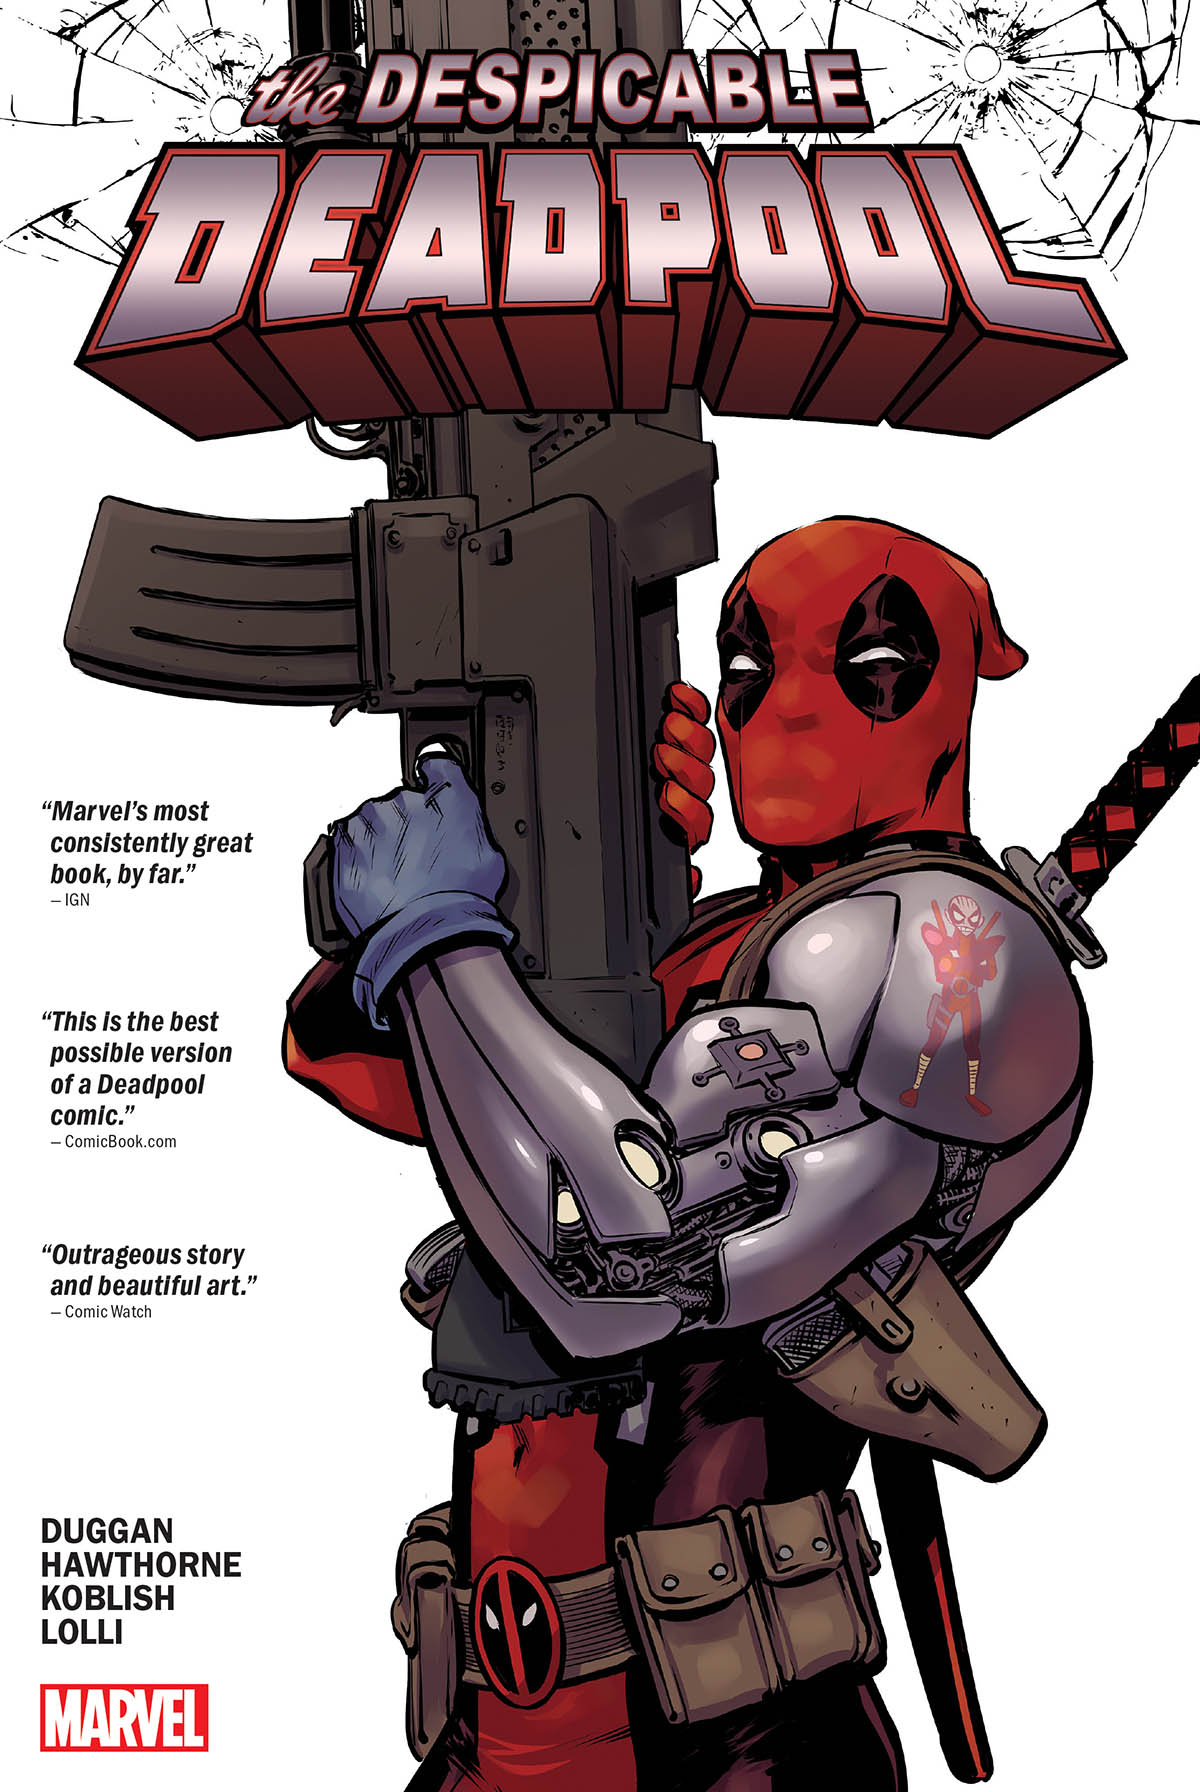 Despicable Deadpool (Hardcover)